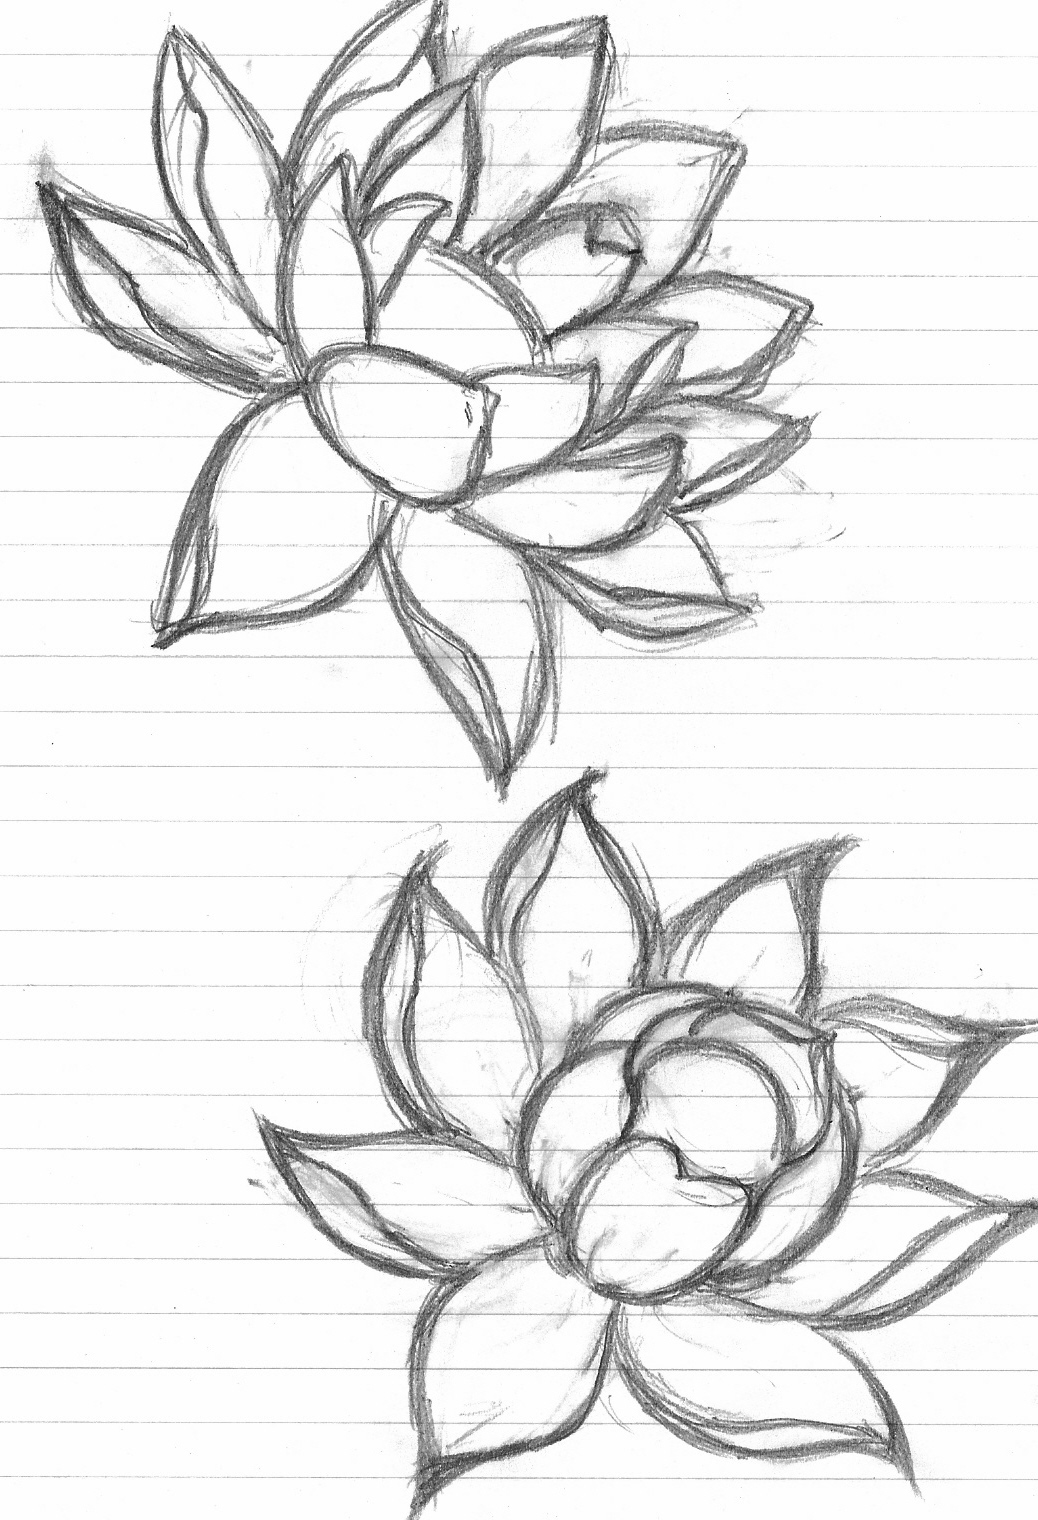 Lotus Tattoos Designs Ideas And Meaning | Tattoos For You